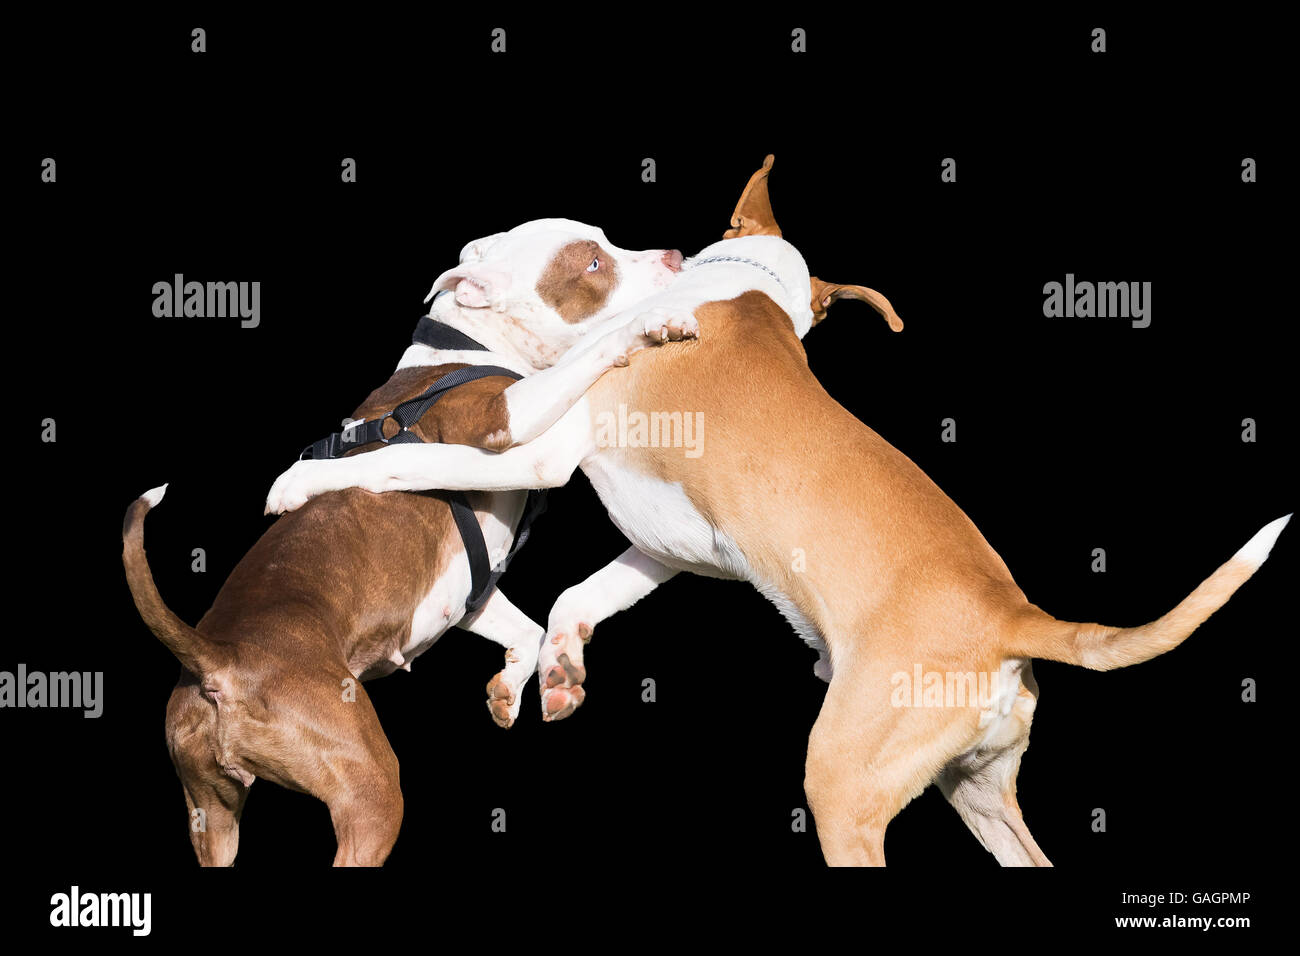 Dogs fight isolated on black. - Stock Image